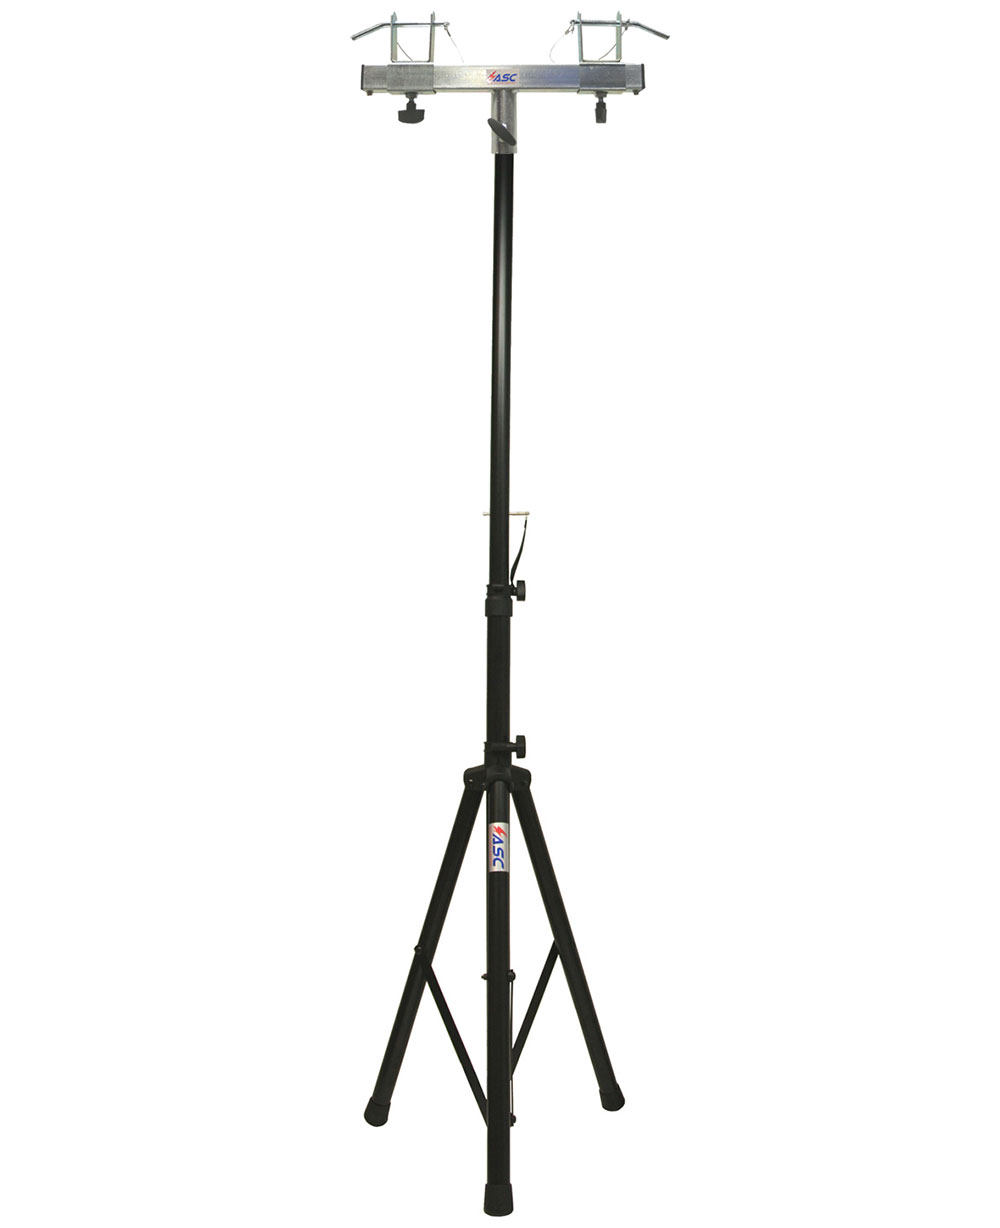 DJ Pro Lighting 6 Foot Tripod Light Stand & Square Truss T-Bar Adapter Package